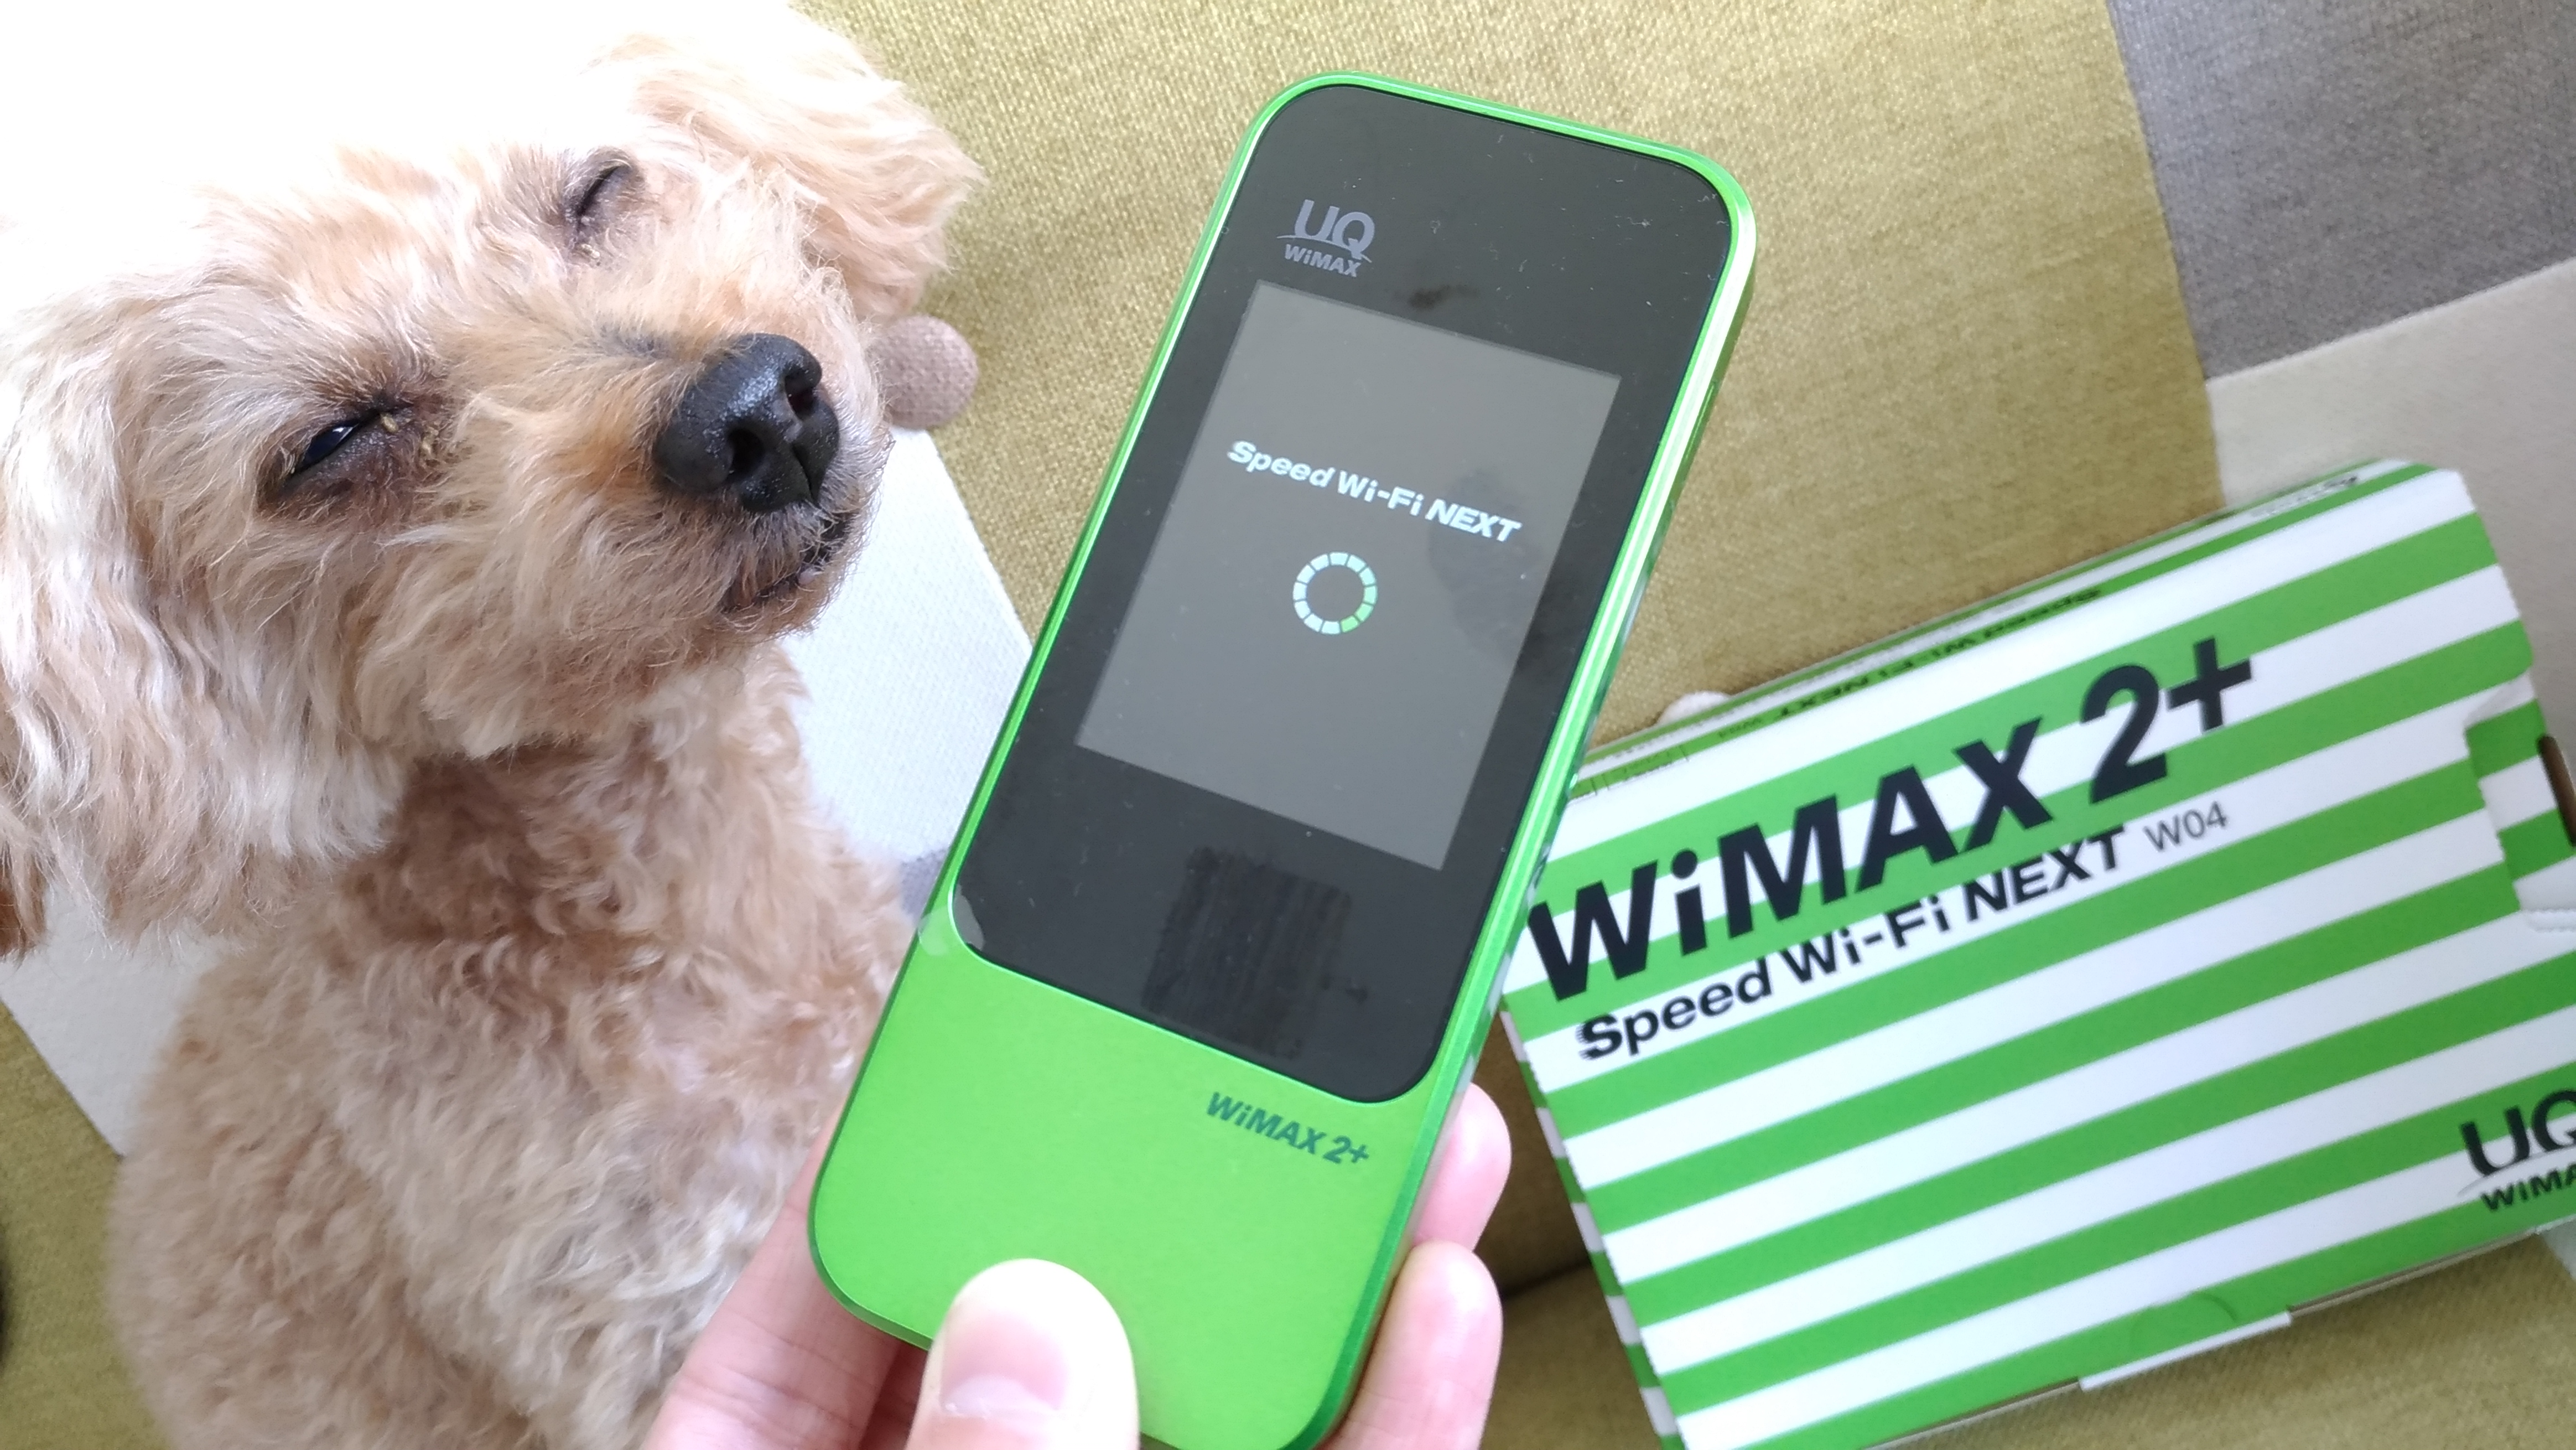 WiMAX 2+ルーター W04 レビュー